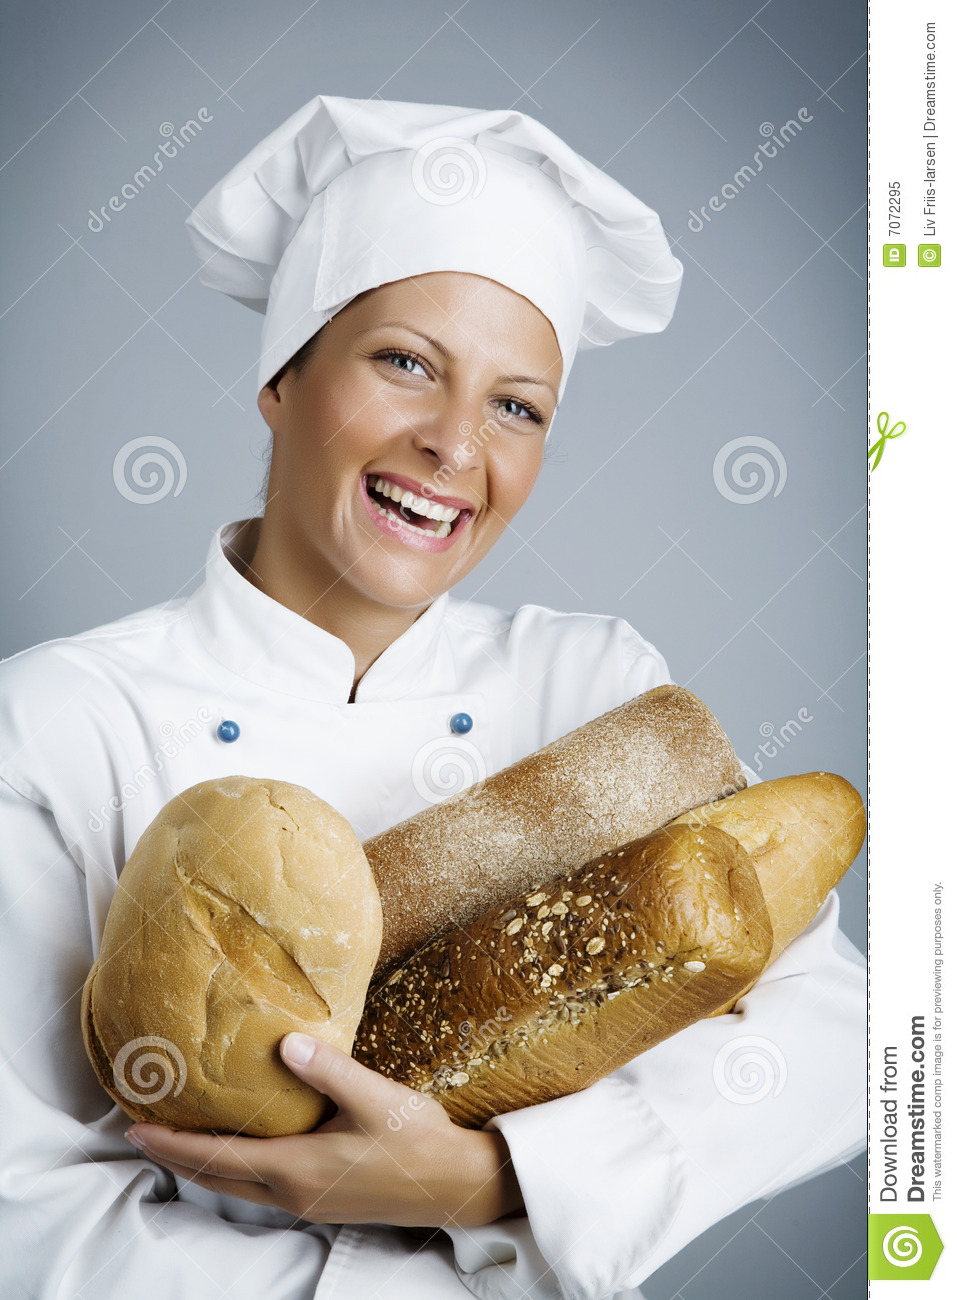 Happy Baker Royalty Free Stock Photo - Image: 7072295